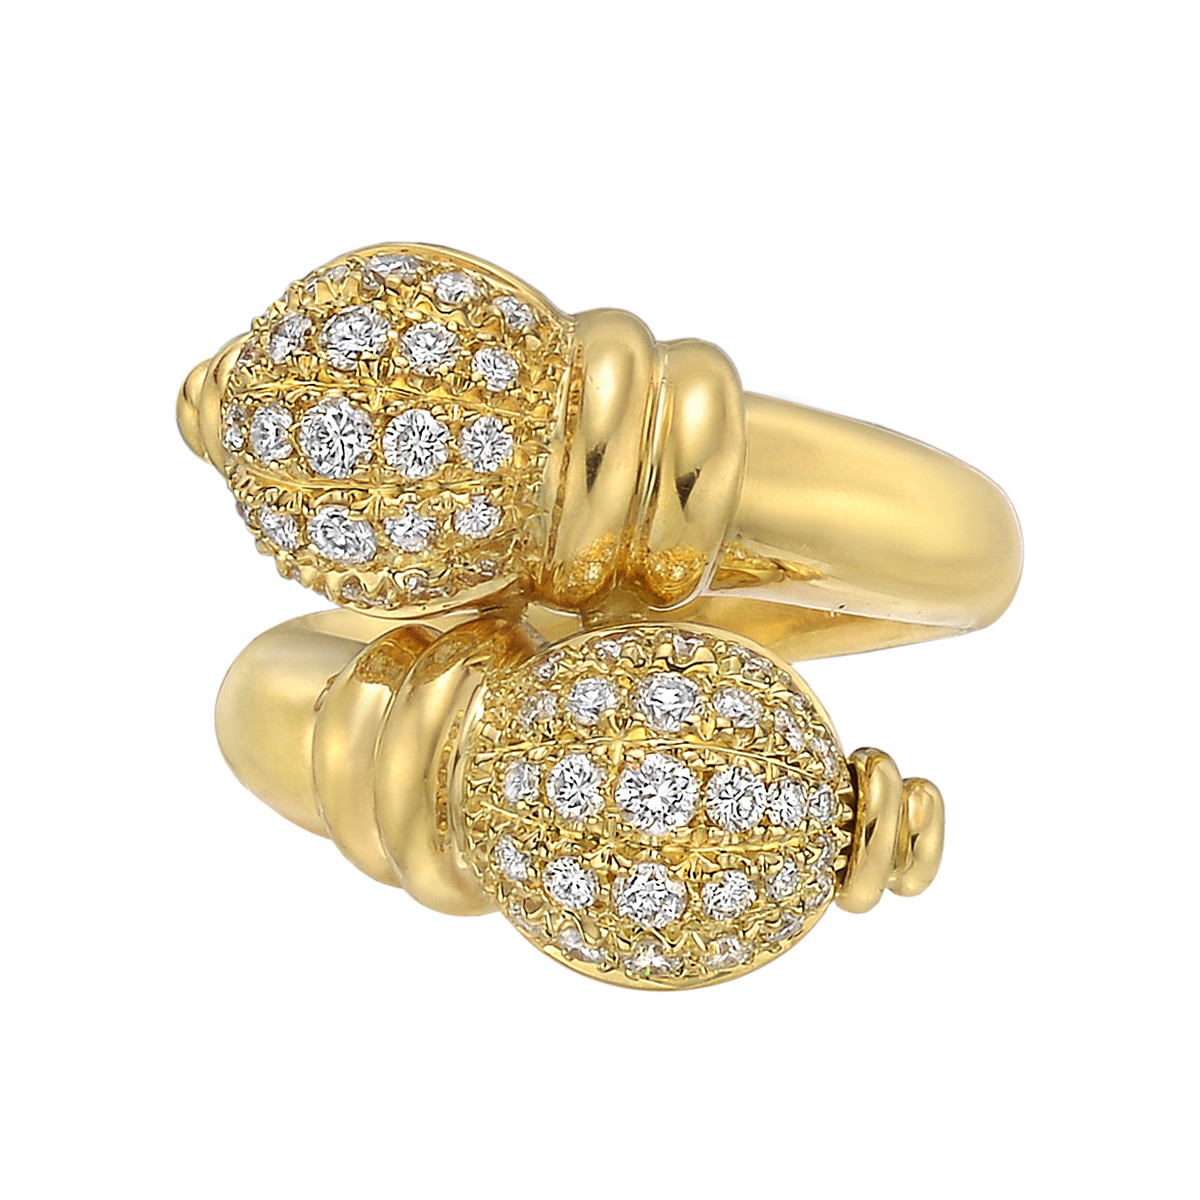 18k Yellow Gold & Diamond Double Finial Ring